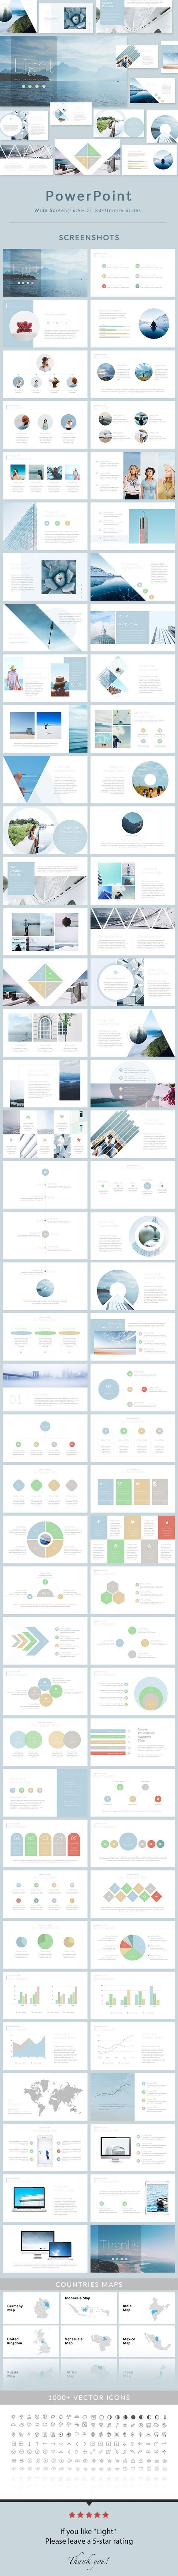 35 best free keynote template images on pinterest | free keynote, Presentation templates